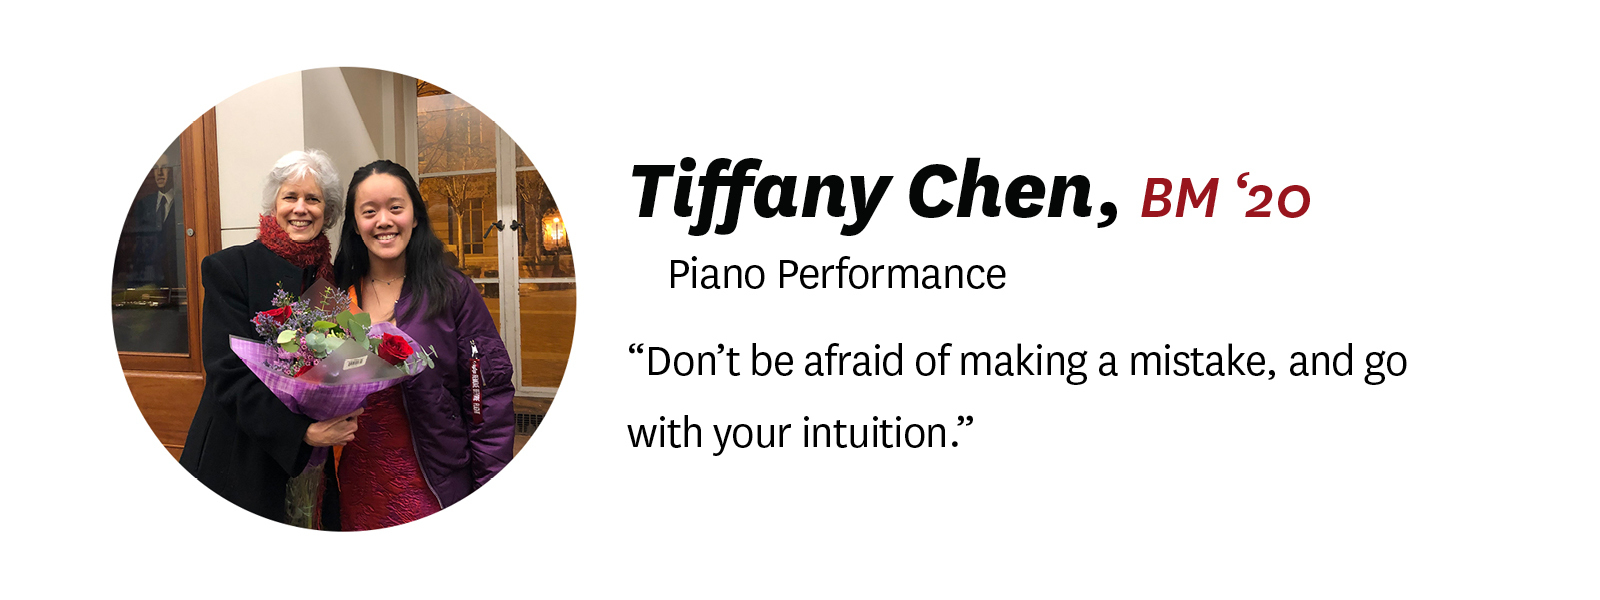 "Photo of Tiffany Chen with her ""senior quote."" Description of text: Tiffany Chen, BM '20, Piano Performance. Quote: ""Don't be afraid of making a mistake, and go with your intuition."" by Tiffany."